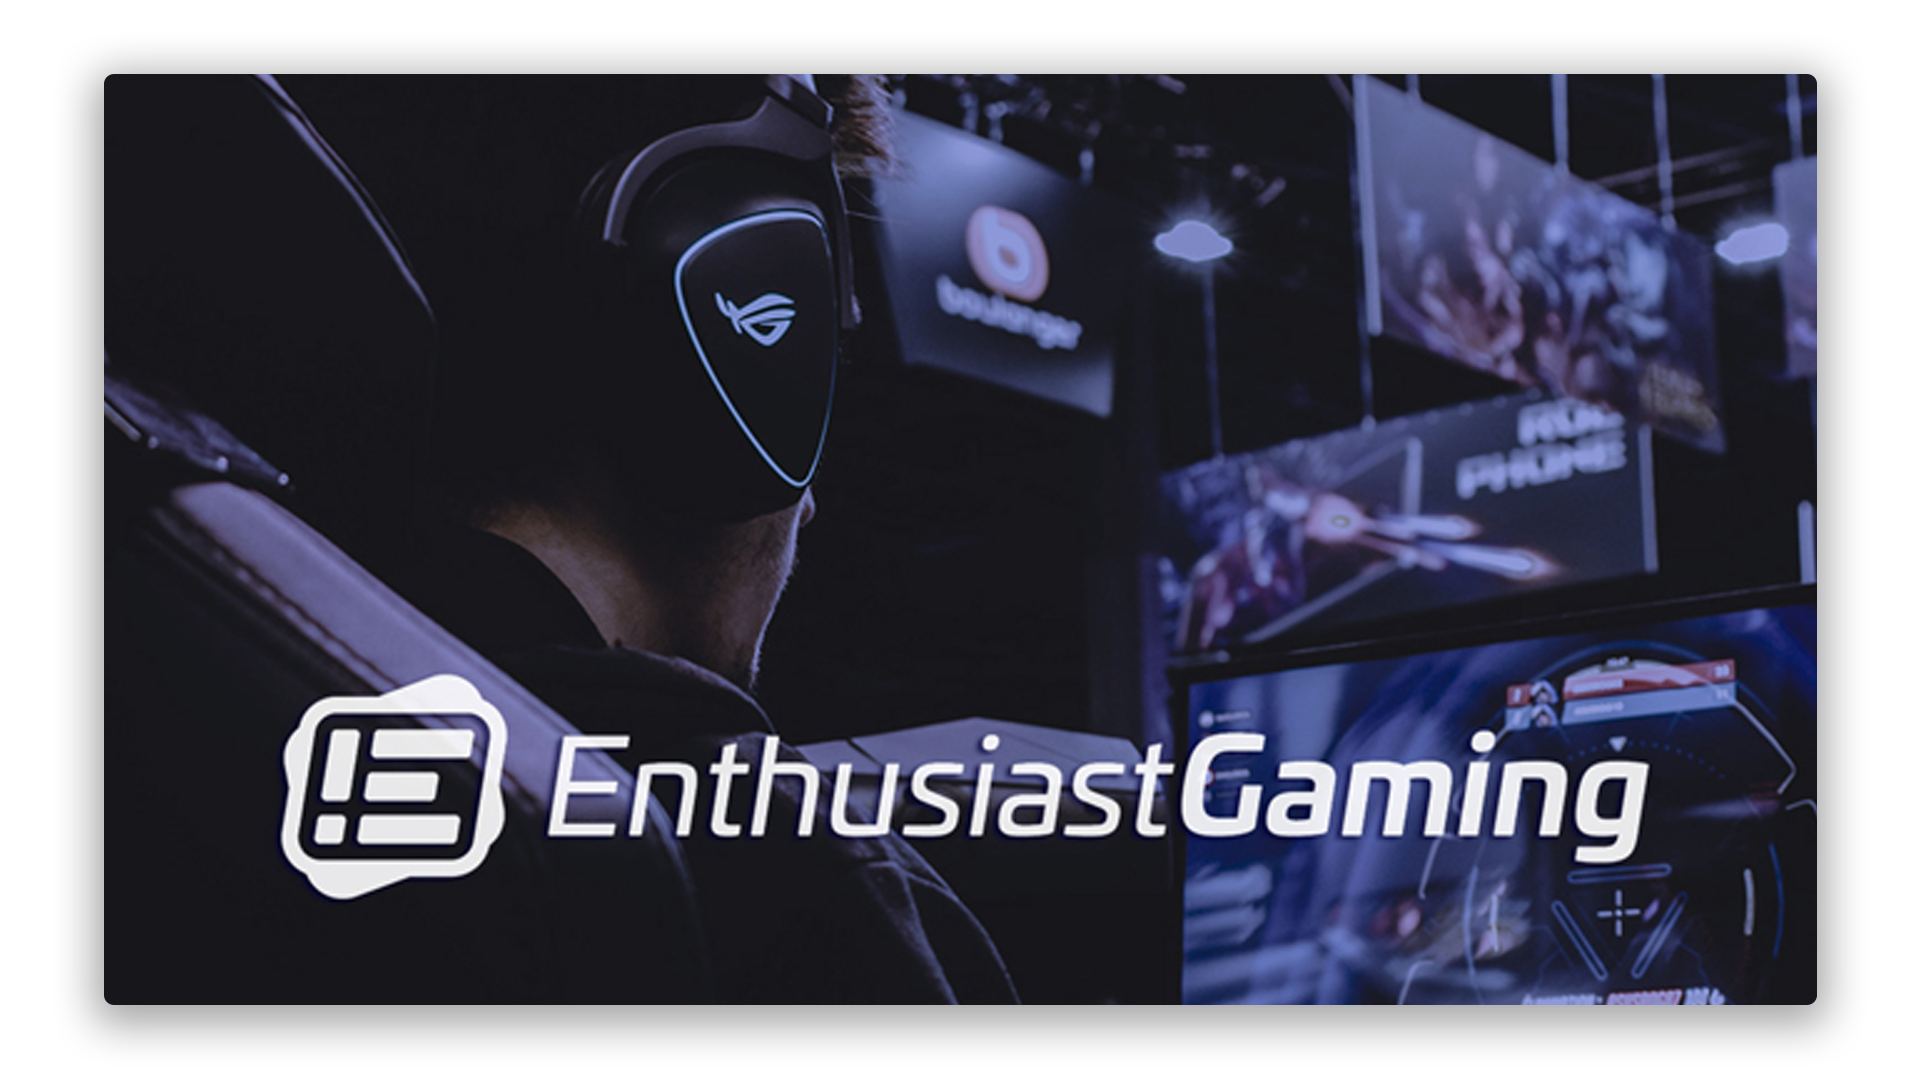 Enthusiast Gaming intro